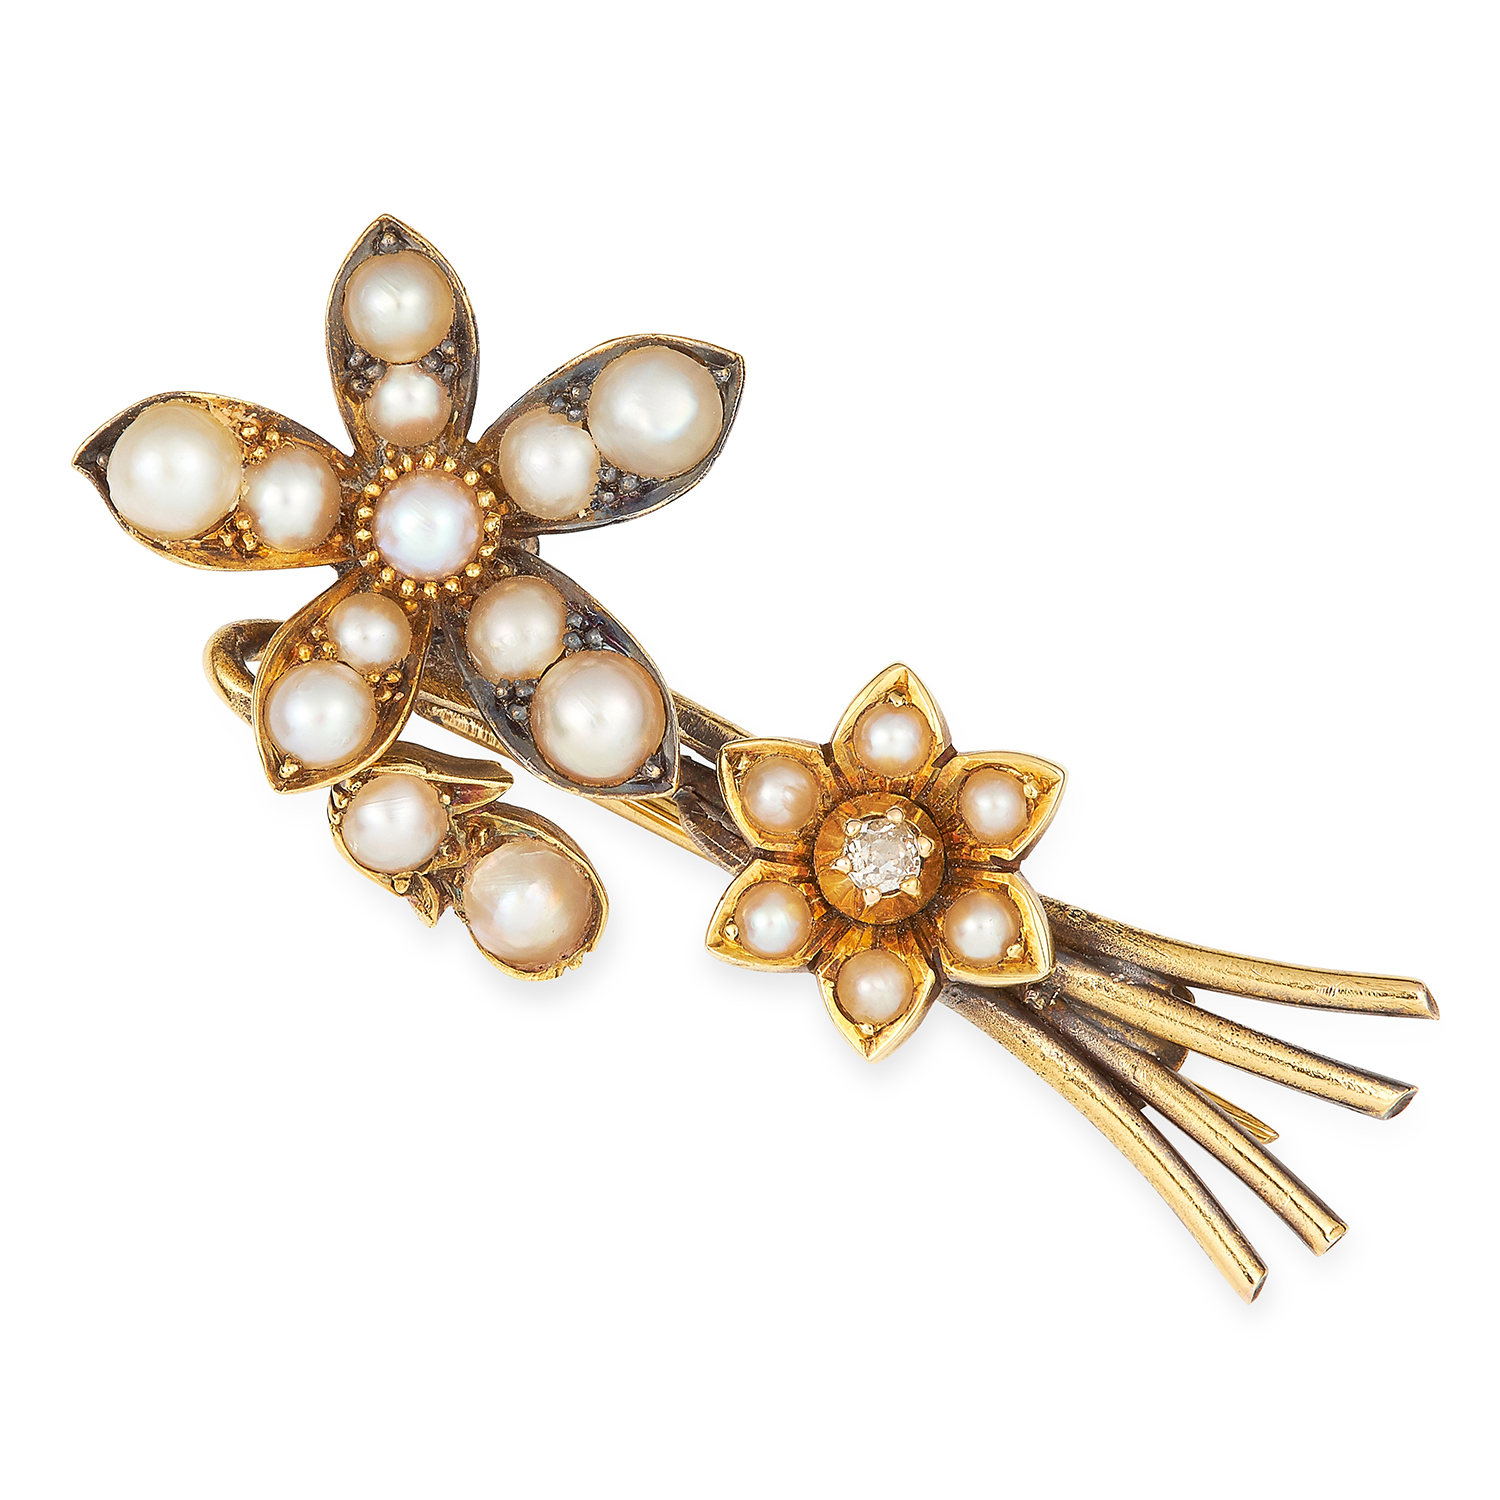 Los 41 - ANTIQUE GEORGIAN PEARL AND DIAMOND EN TREMBLANT FLOWER SPRAY BROOCH set with seed pearls and an